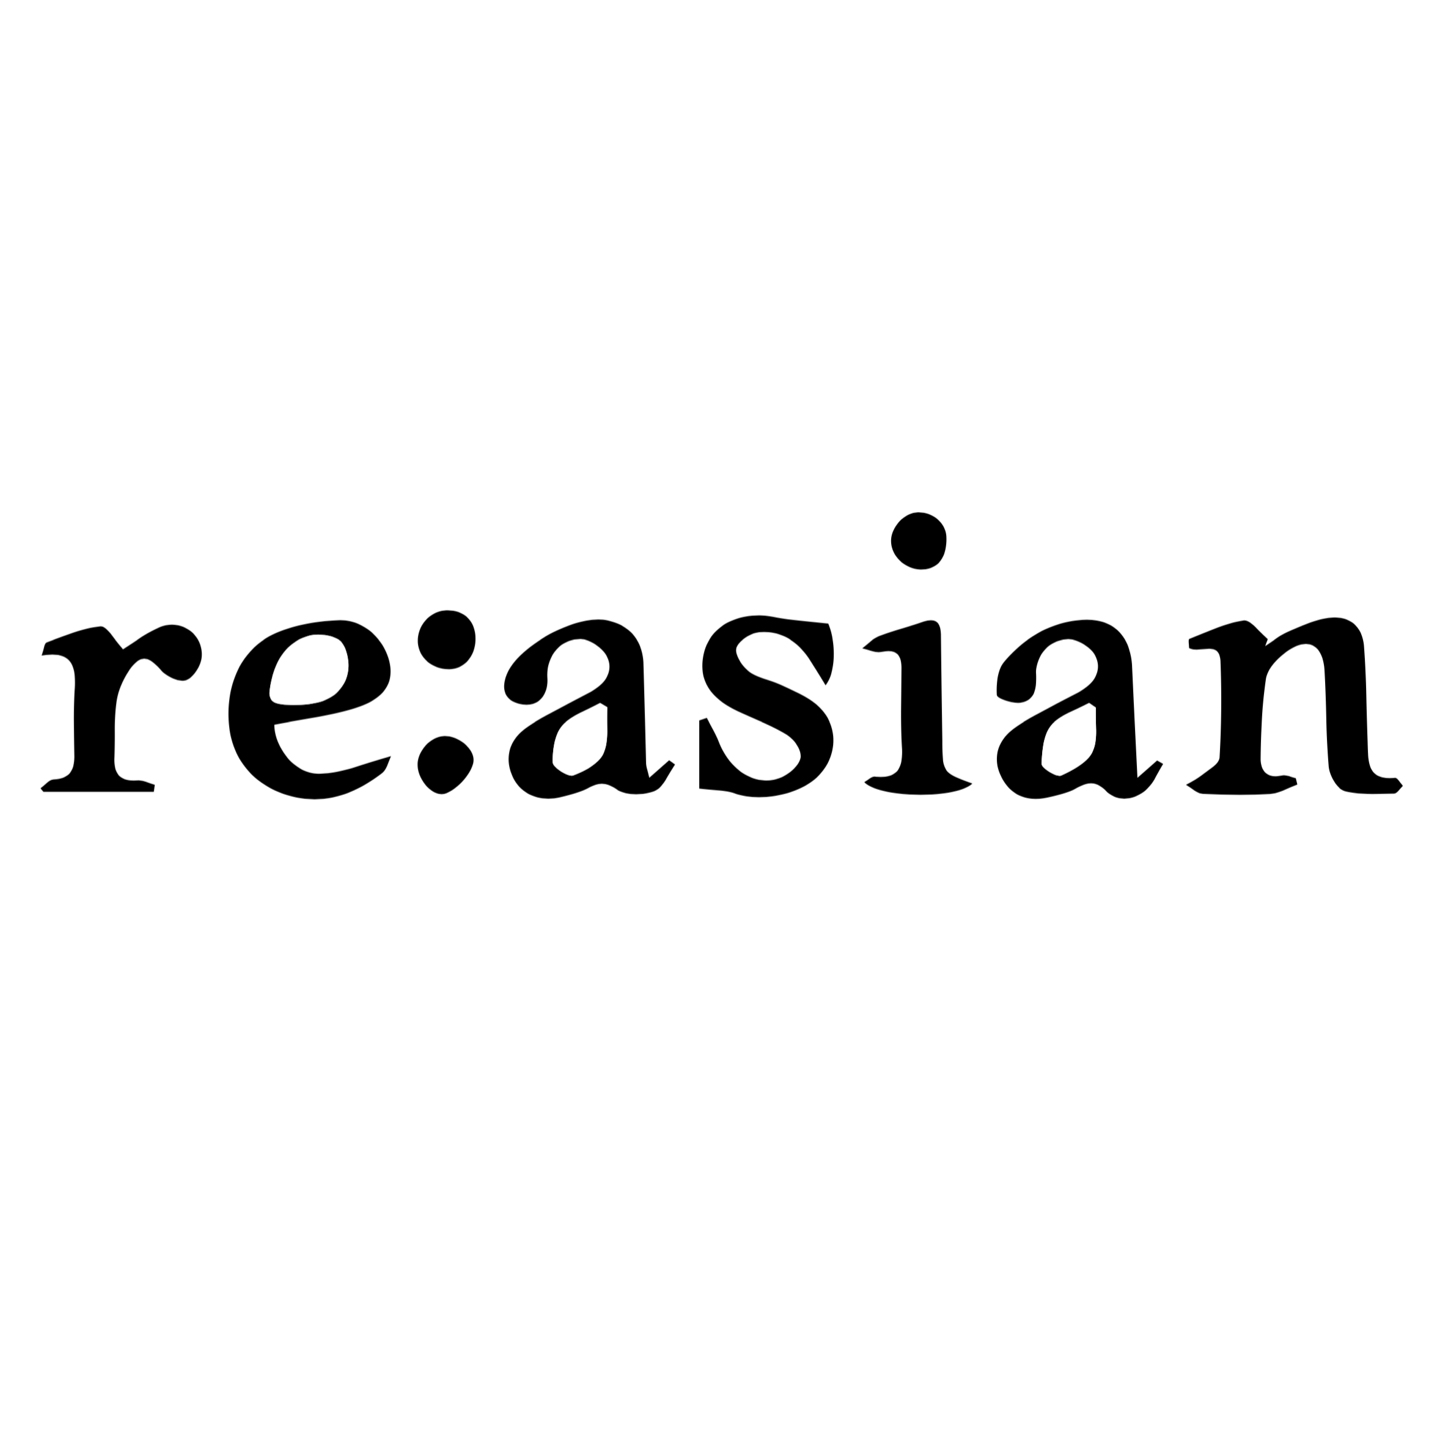 re:asian